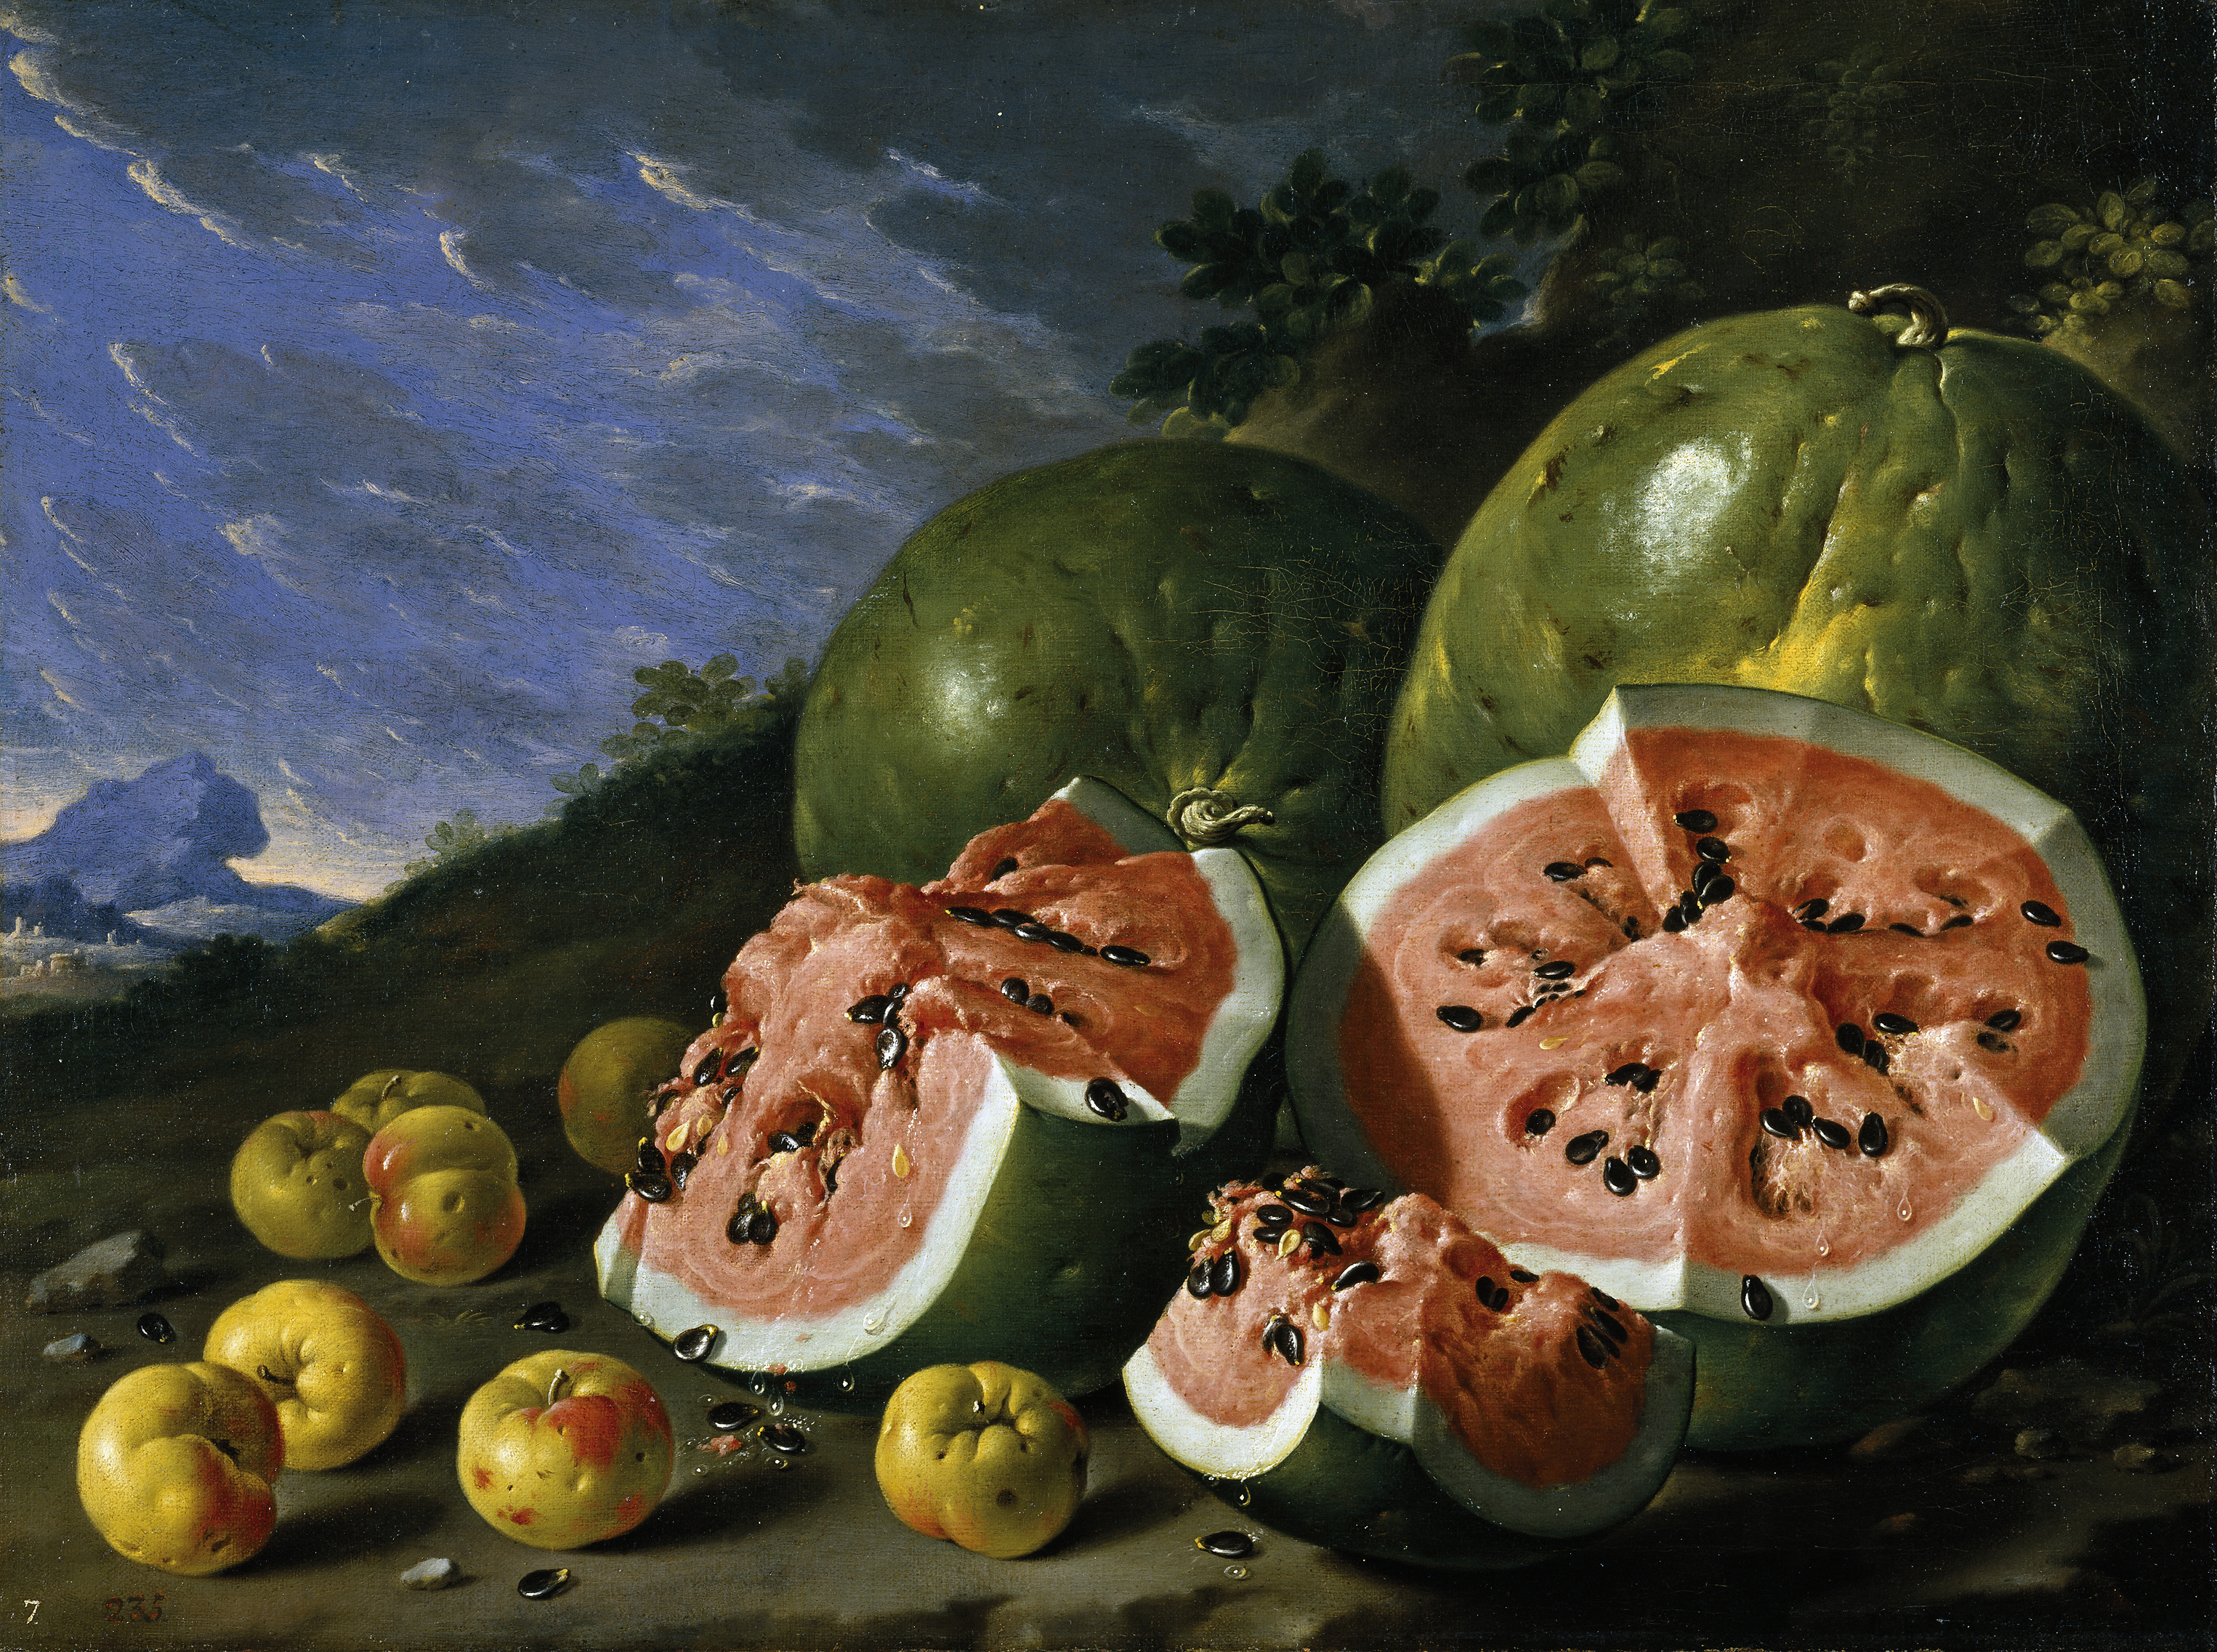 http://upload.wikimedia.org/wikipedia/commons/a/ae/Luis_Melendez,_Still_Life_with_Watermelons_and_Apples,_Museo_del_Prado,_Madird.jpg